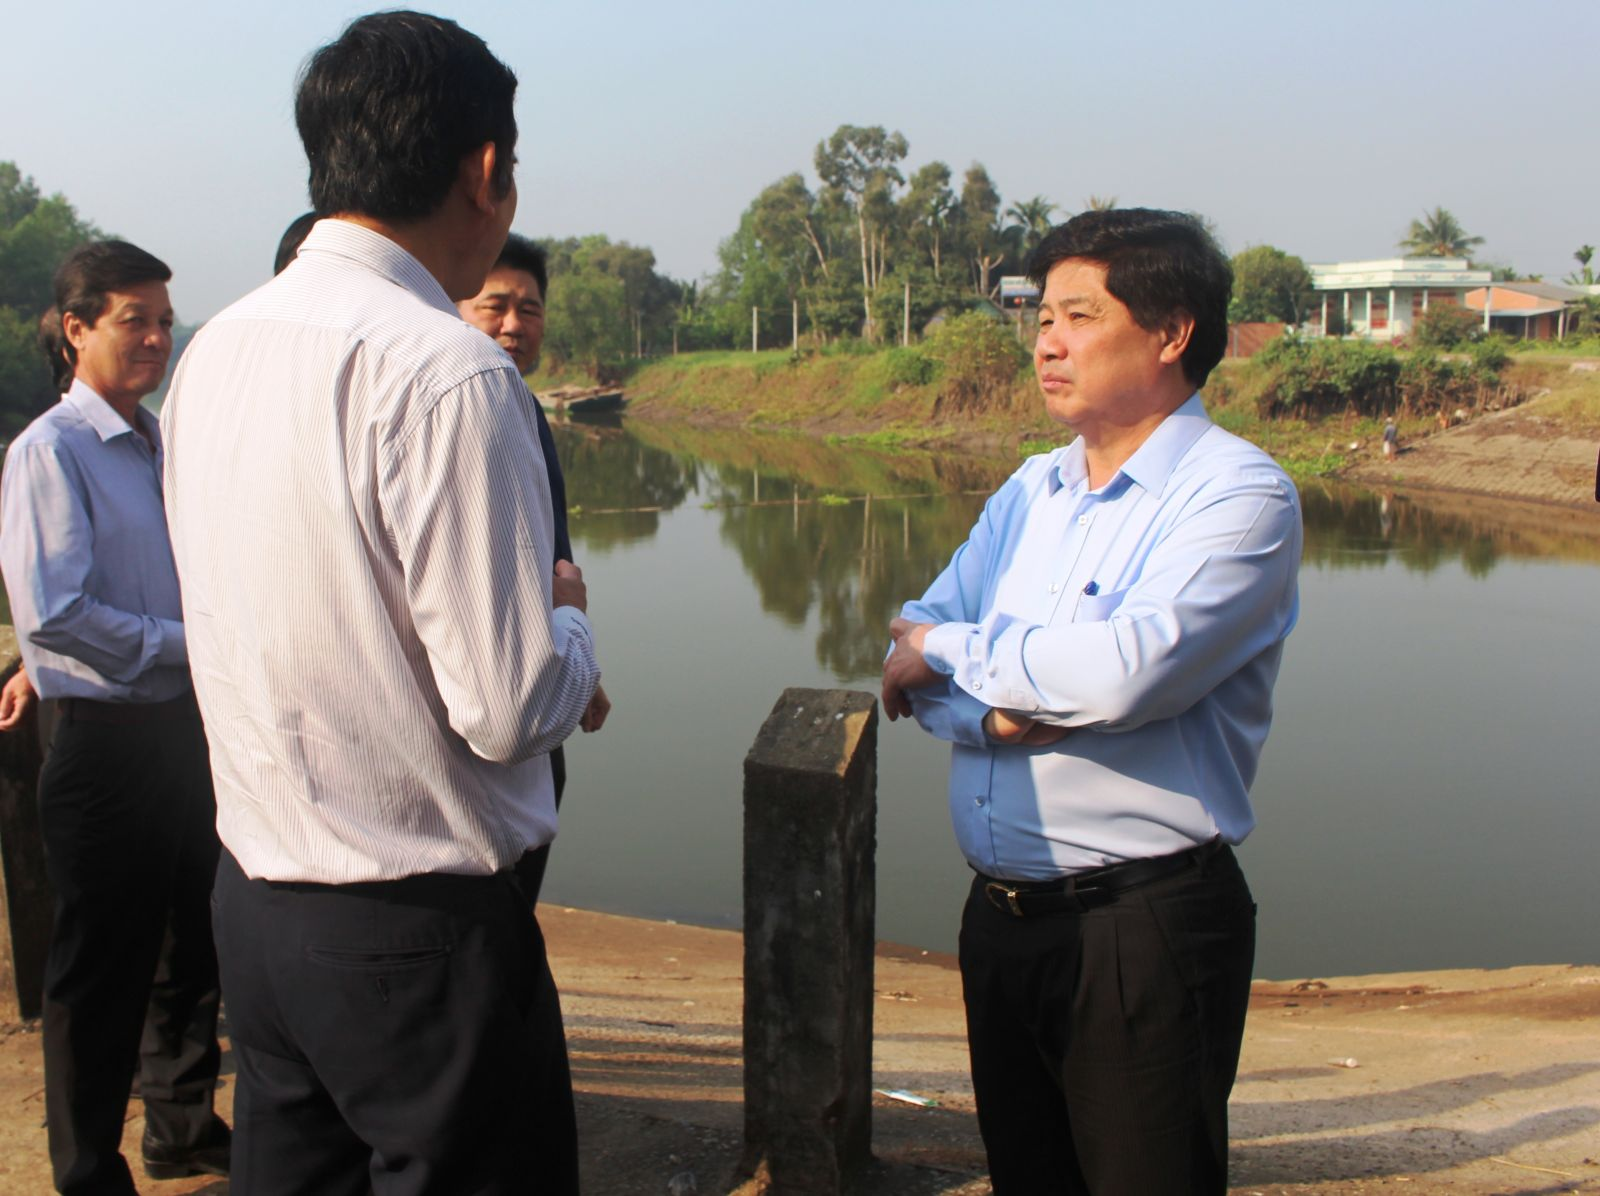 Deputy Minister of Agriculture and Rural Development - Le Quoc Doanh highly appreciated the initiative in preventing and fighting against drought and salinity in Long An